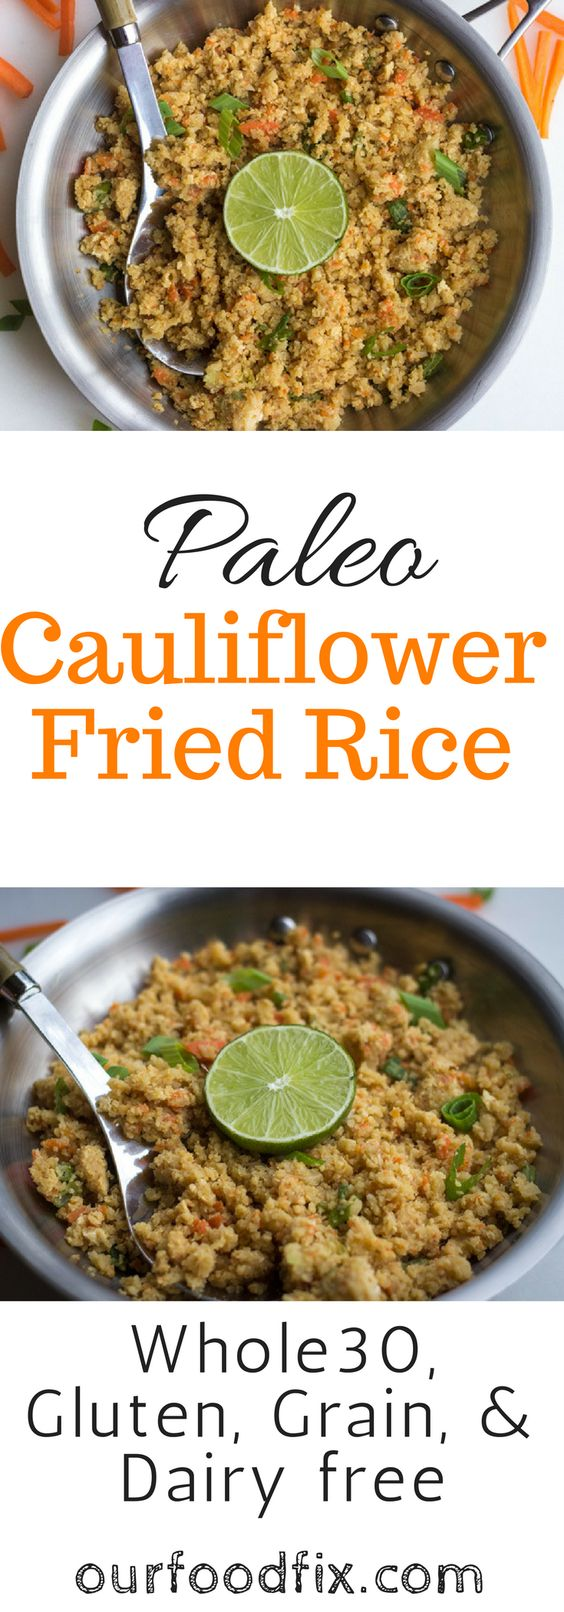 Cauliflower fried rice | Paleo recipes | gluten free recipes | grain free recipes | dairy free recipes | Whole30 recipes | healthy dinner | recipe makeover | vegetarian recipes | one pot meal | leftovers